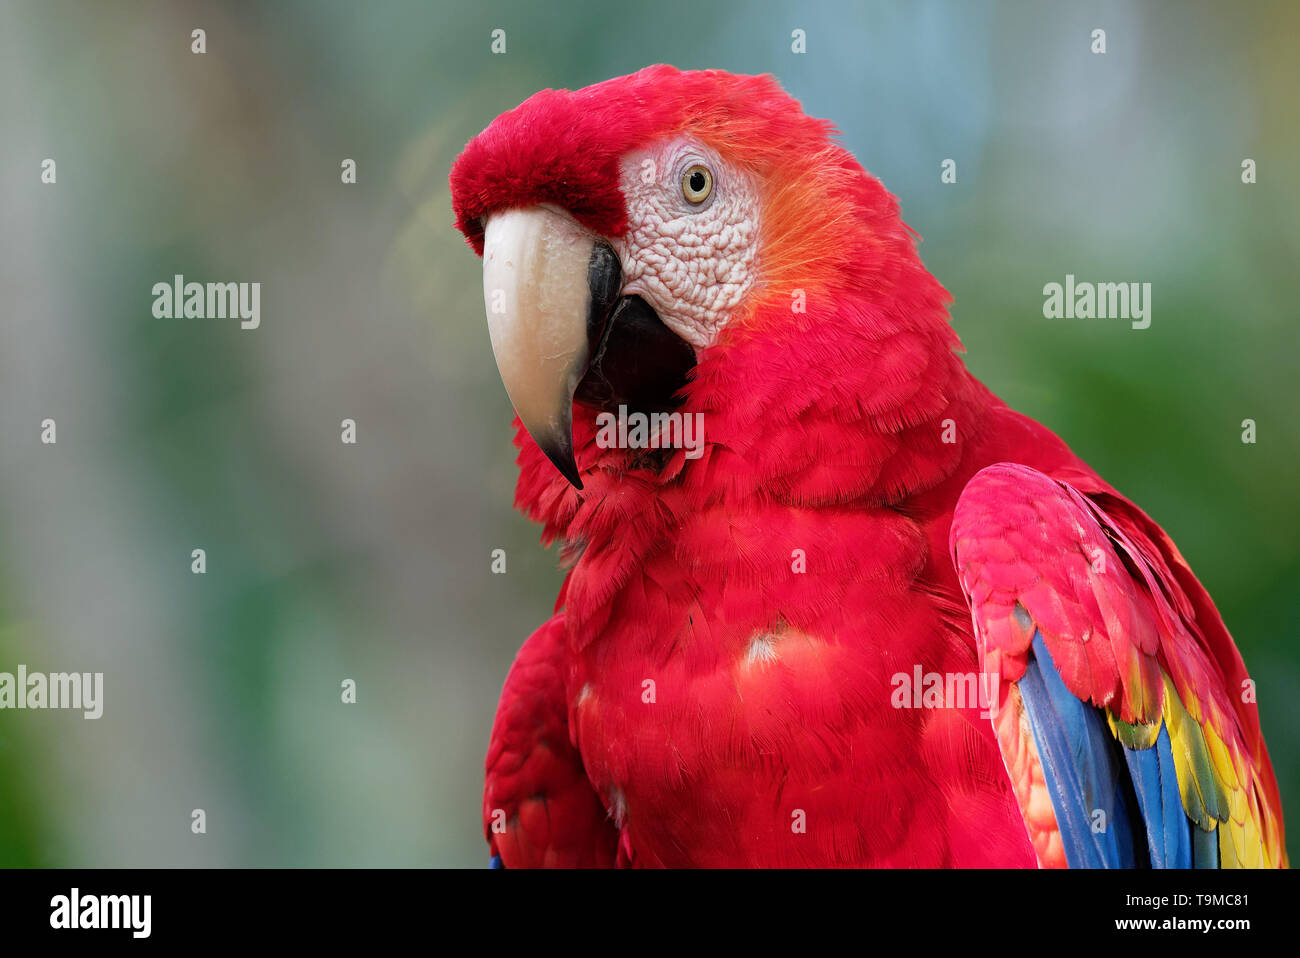 Scarlet Macaw - Ara macao  large red, yellow, and blue Central and South American parrot, native to humid forests of tropical Central and South Americ - Stock Image